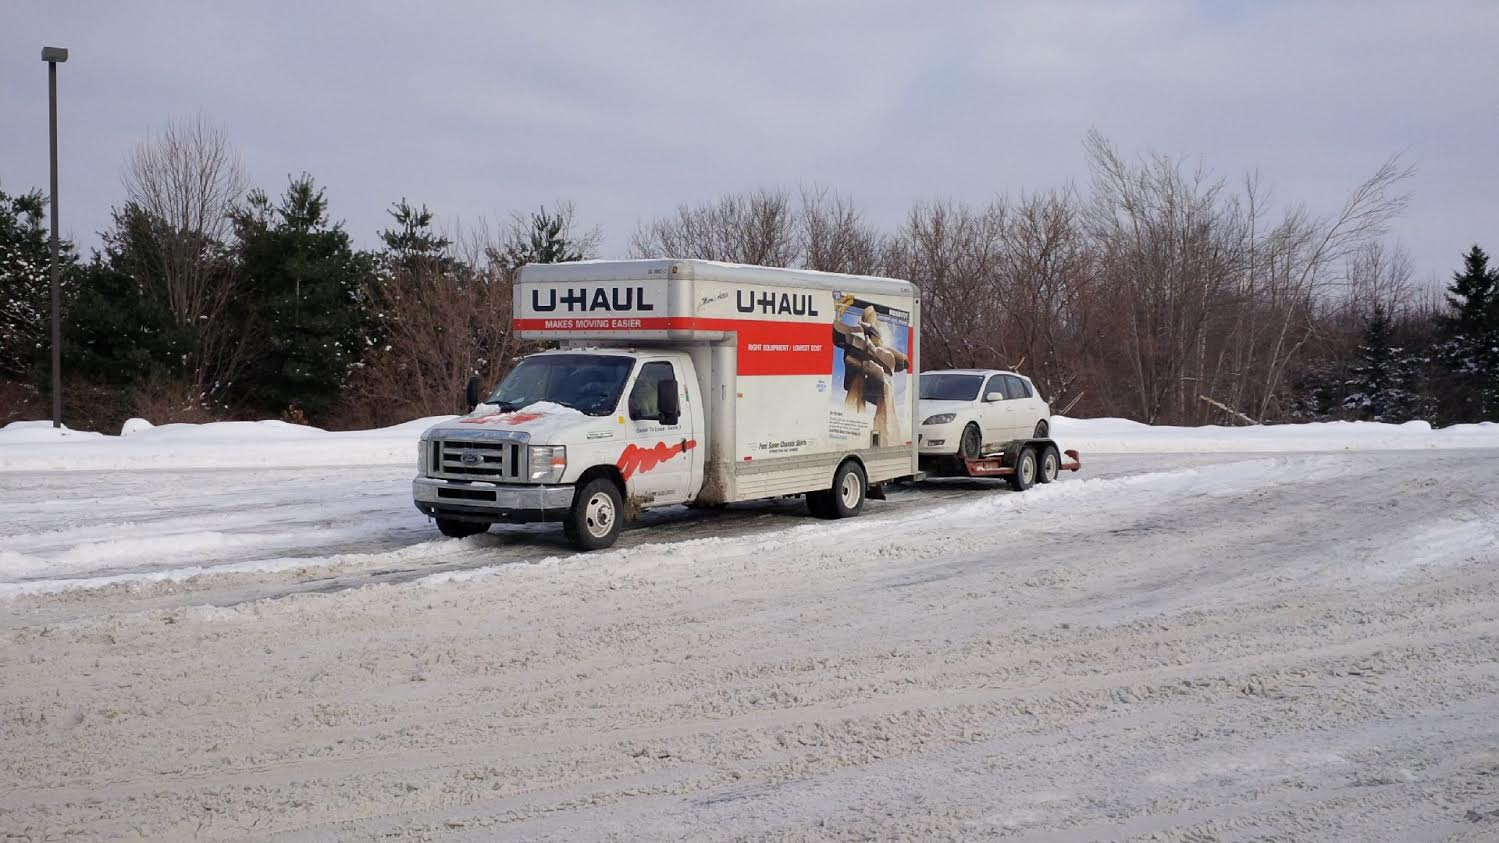 uhaul and car